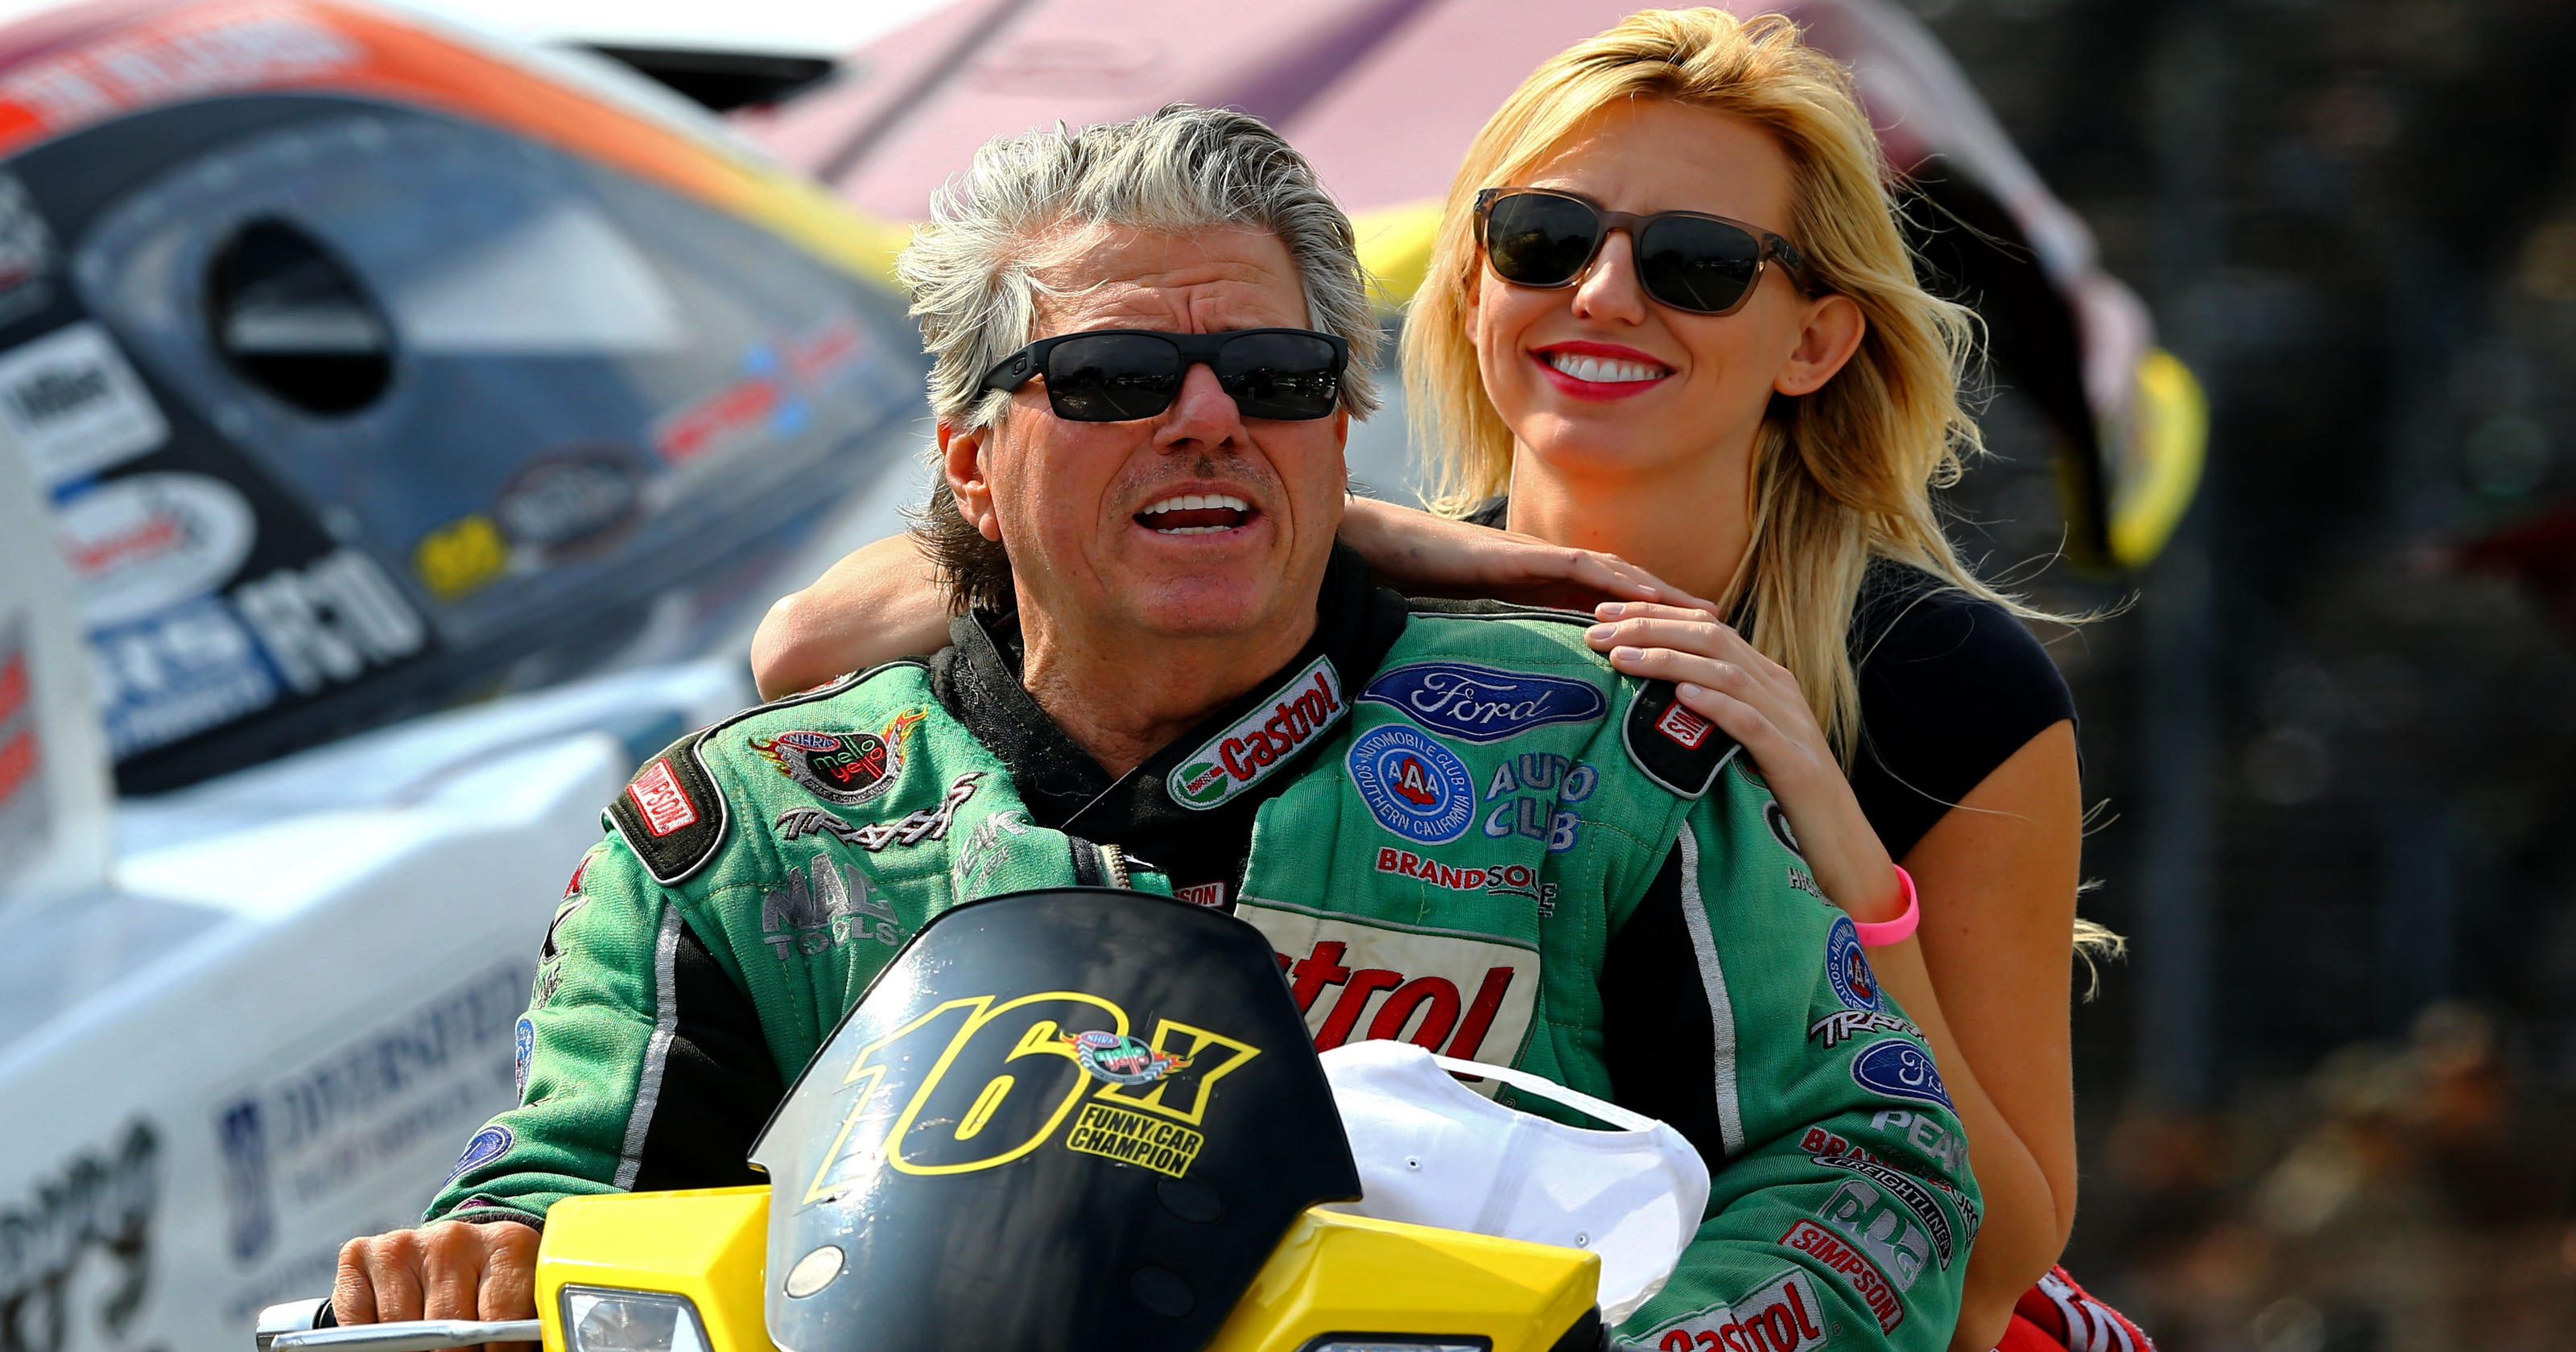 John Force forces immediate resignation of crew chief Jimmy